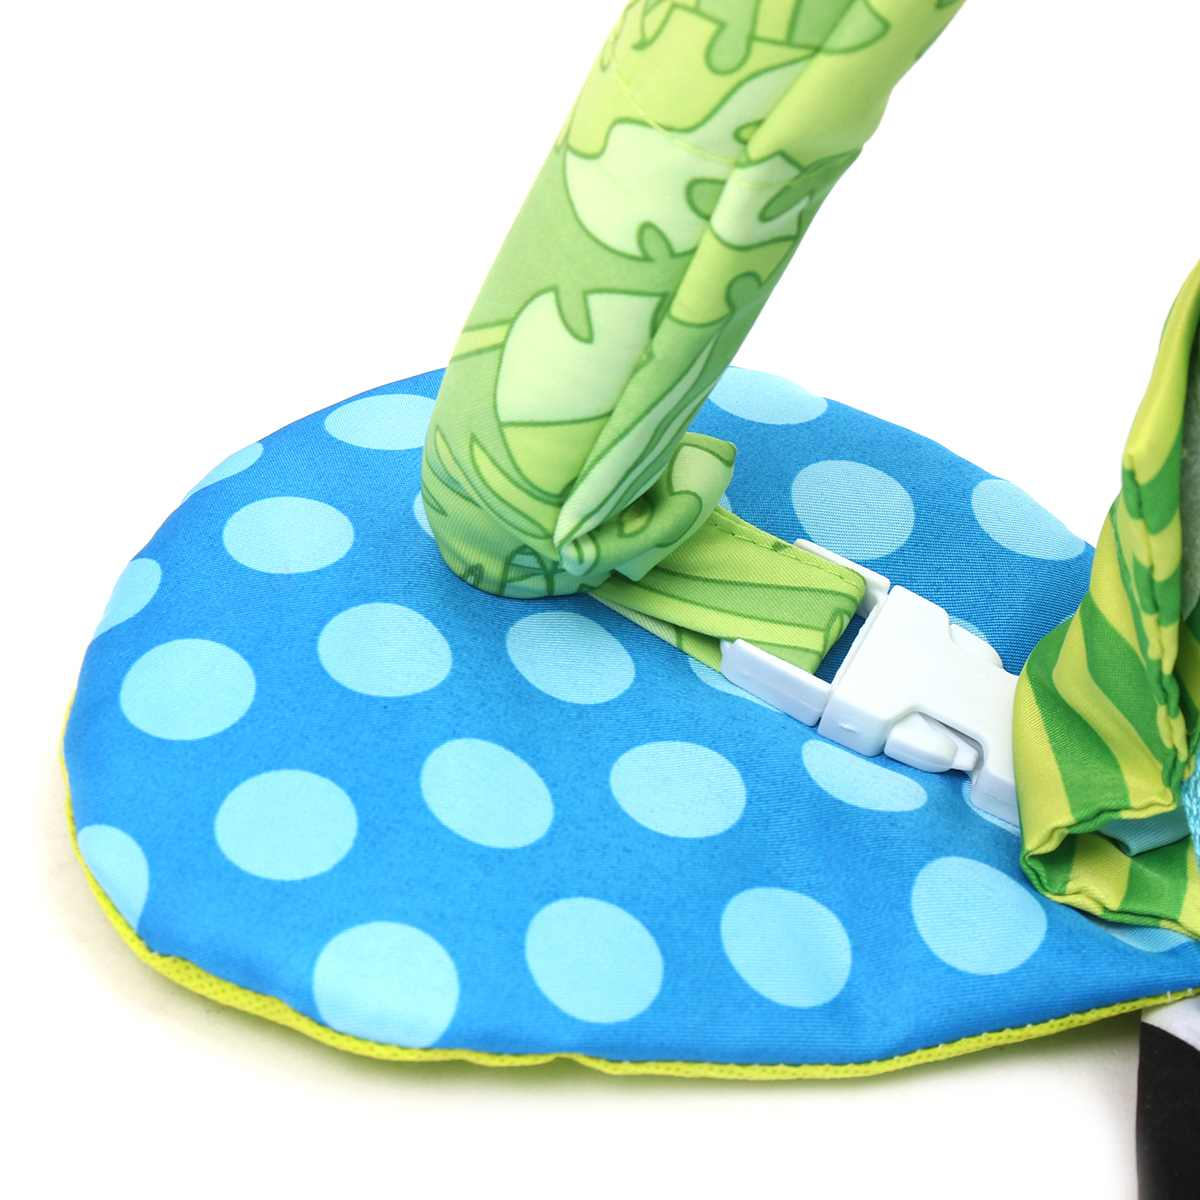 Turtle Baby Infant Play Mat Toddler Game Blanket Crawl Pad Game Mat Baby Fitness Frame Educational Toy Activity Gym Floor Rug   Happy Baby Mama